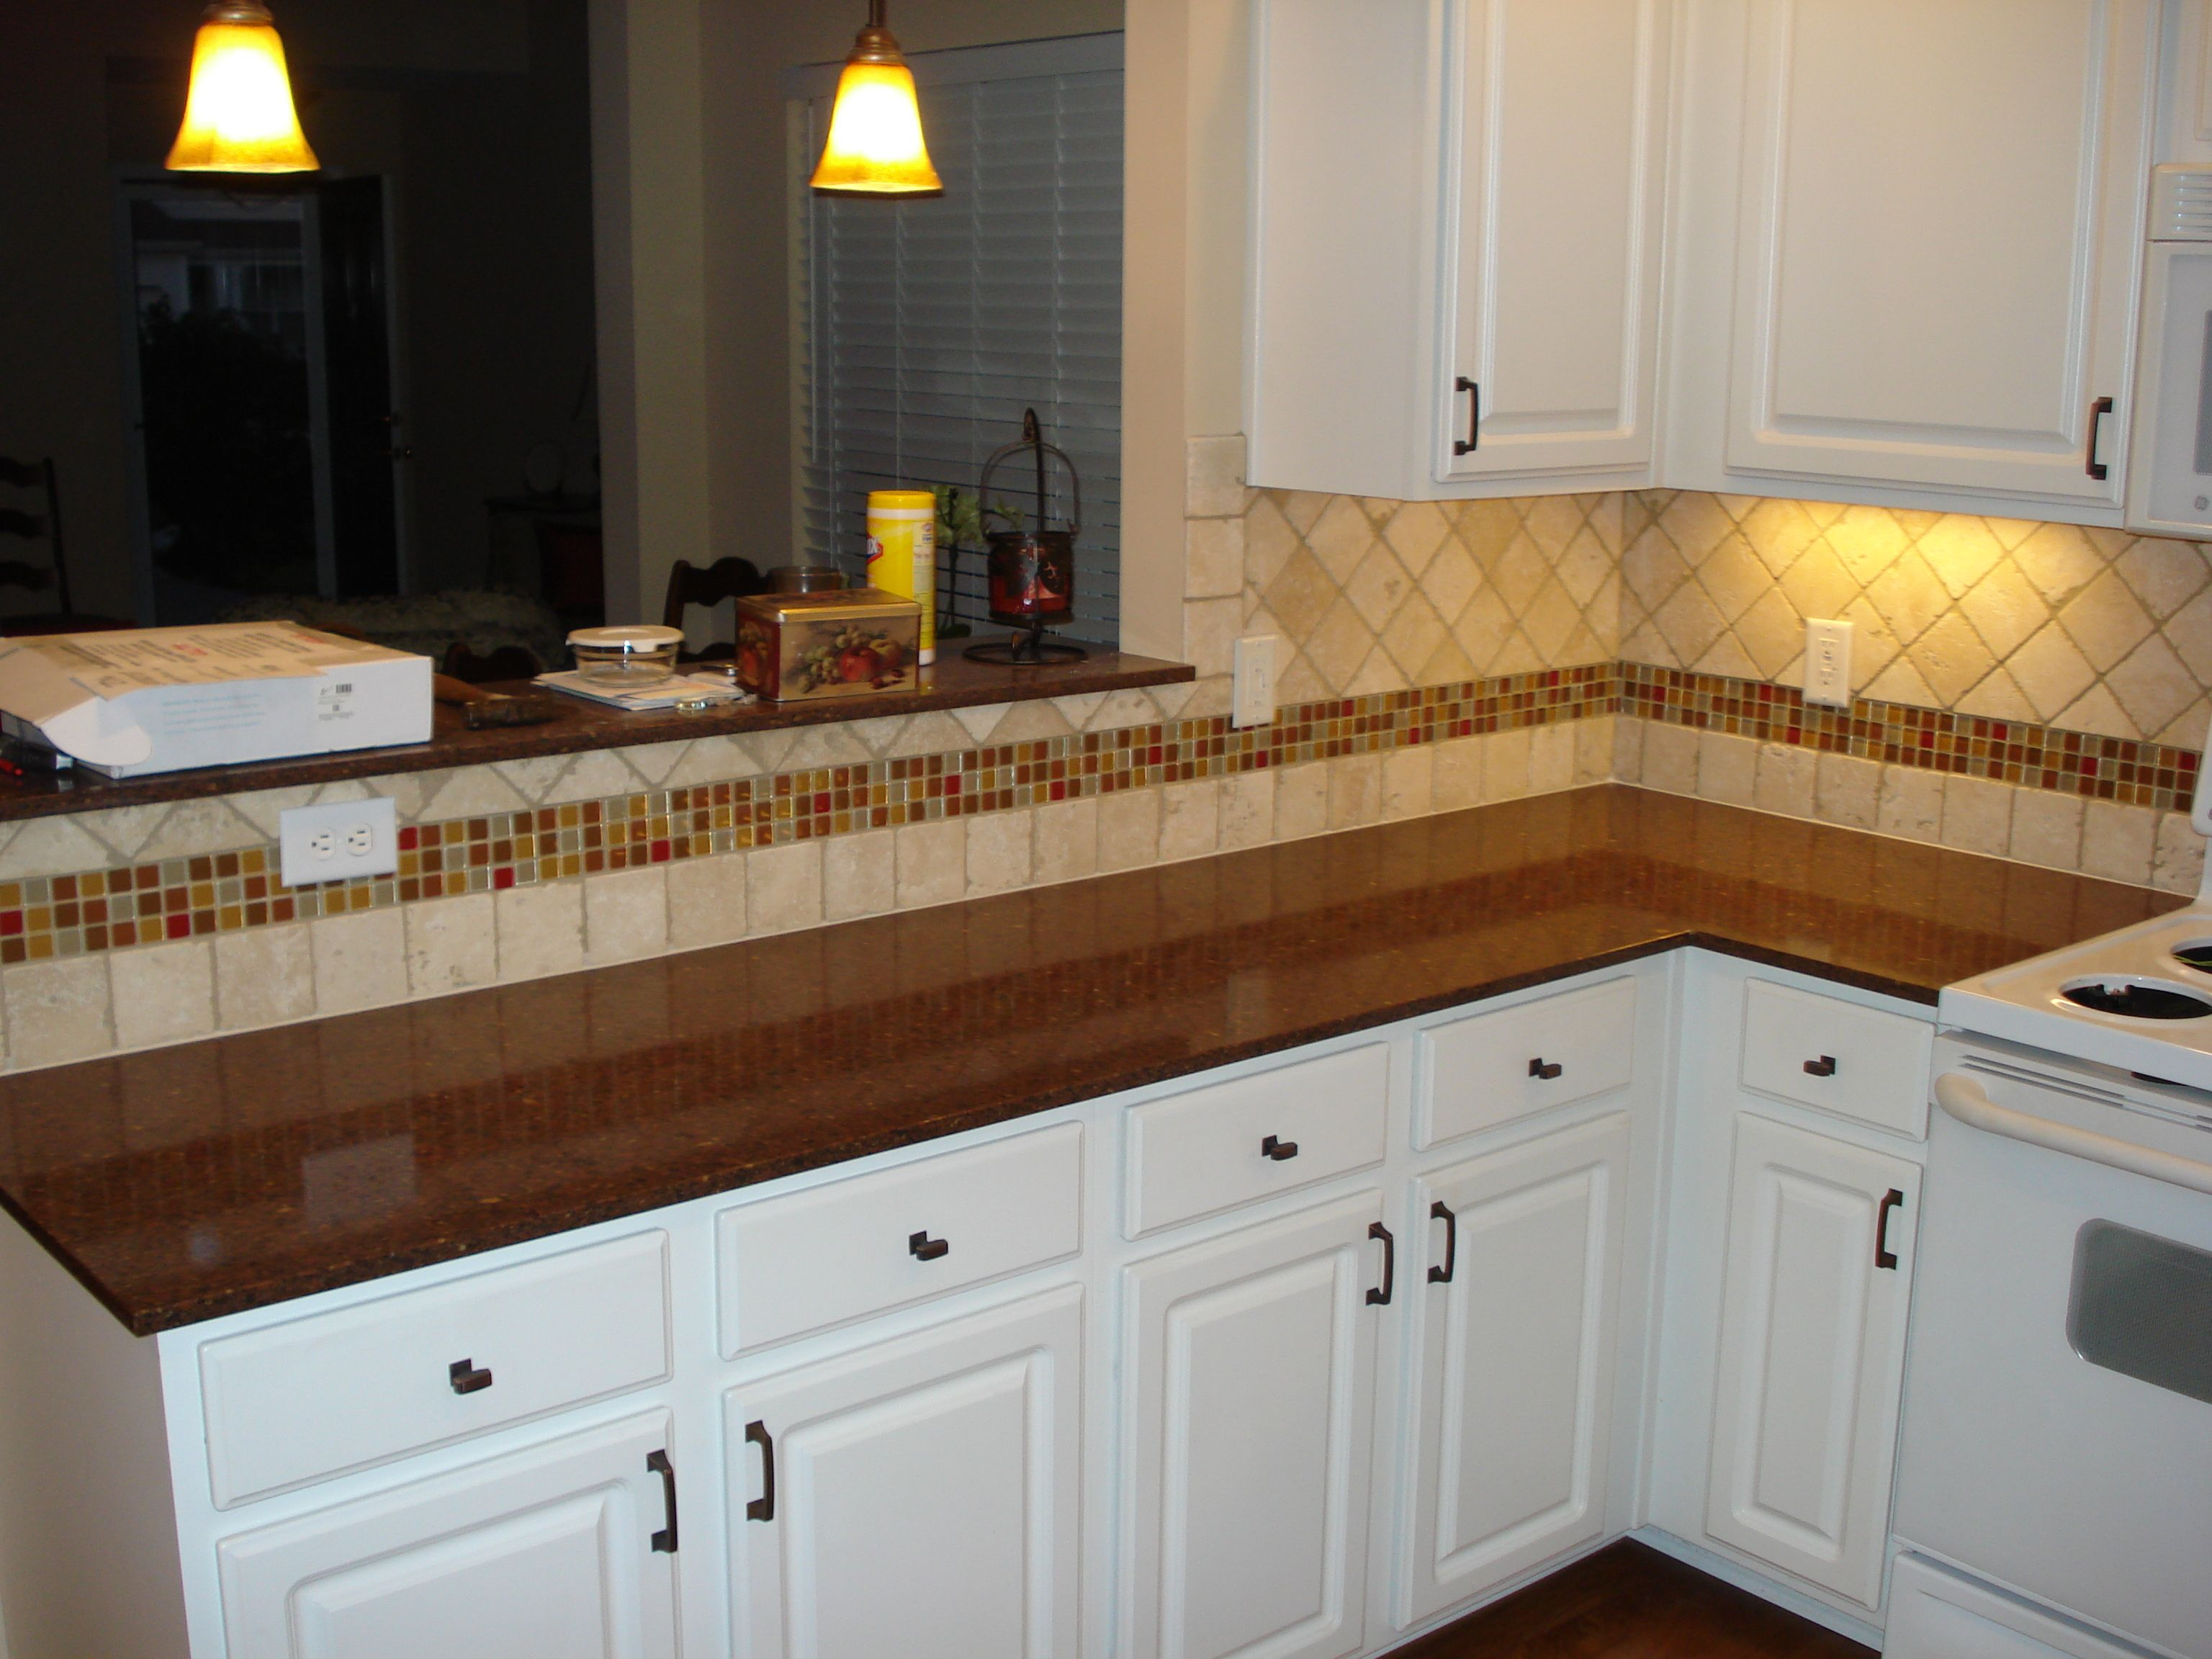 Kitchen Backsplash Accent Tiles Photos tumbled marble backsplash with multi-colored glass accent strip